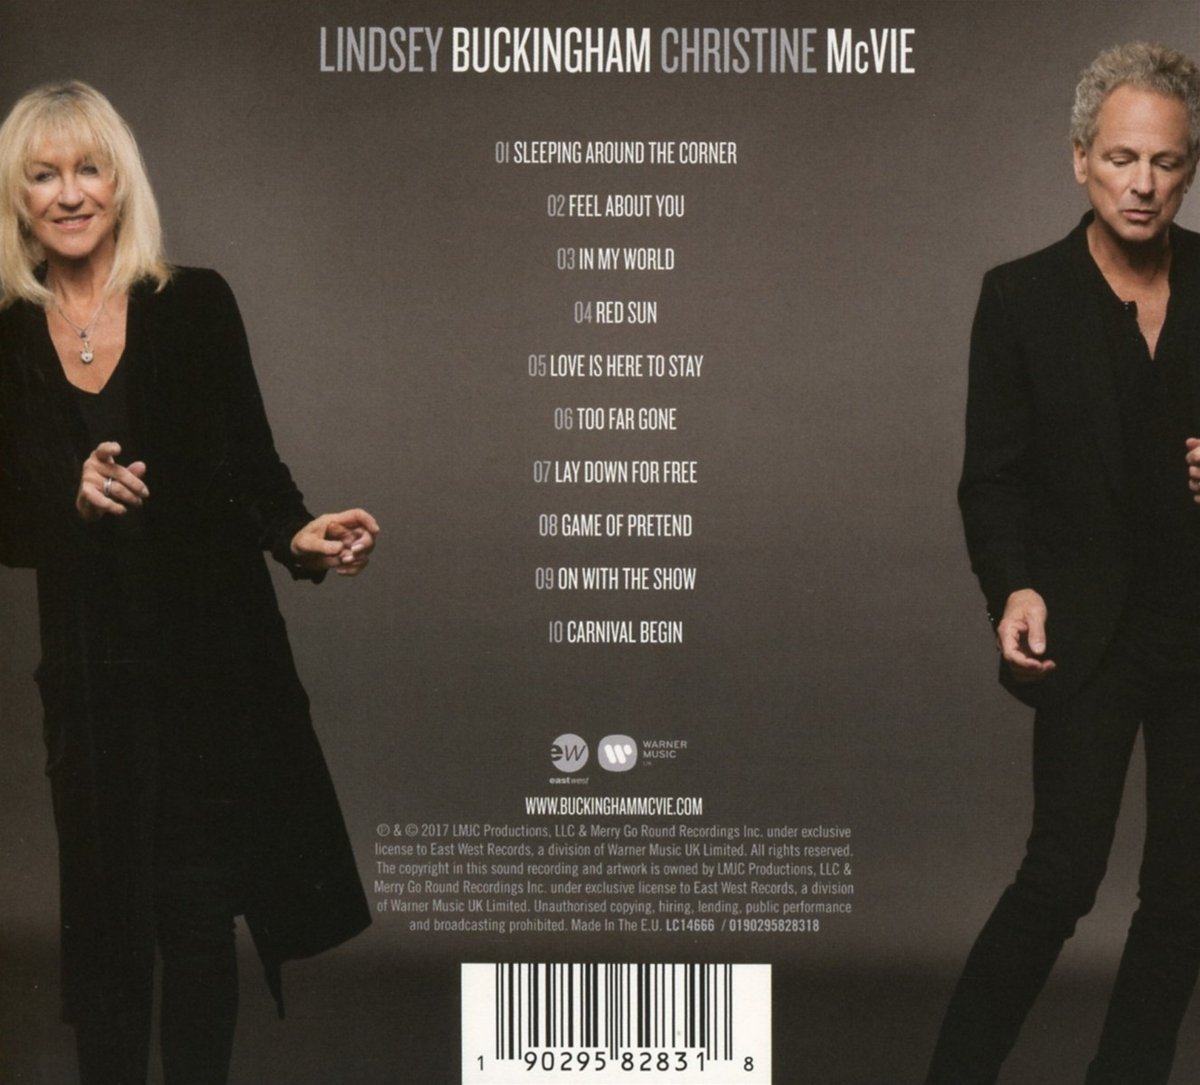 Buckingham McVie (back)